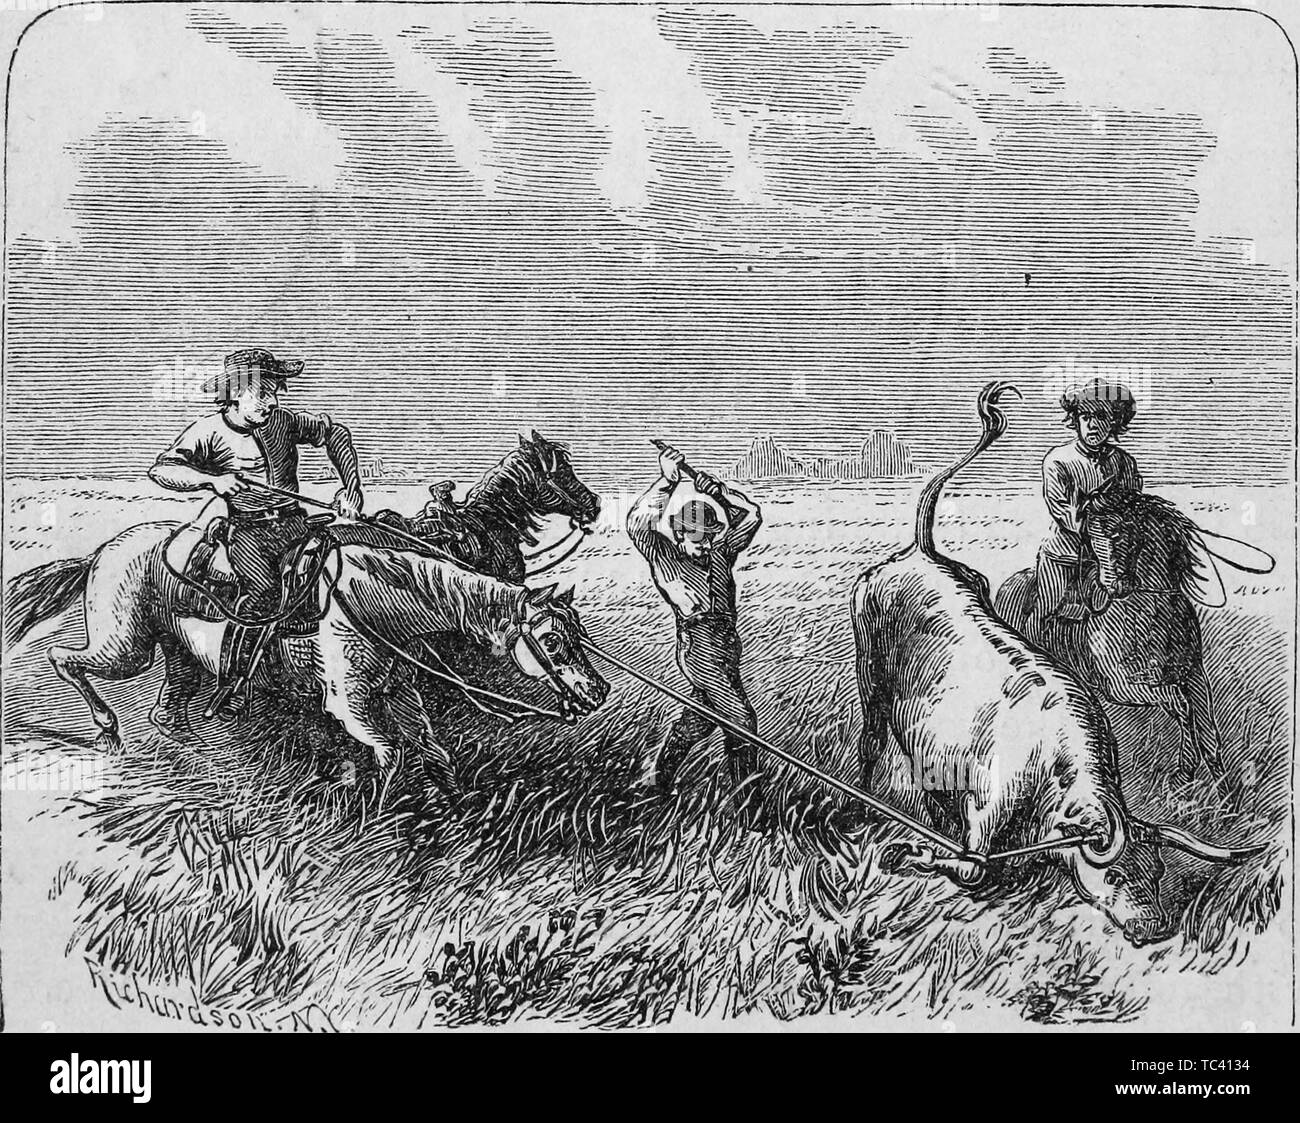 Engraving of cowboys branding a cattle, from the book 'Brief history of Texas from its earliest settlement to which is appended the constitution of the state' by De Witt Clinton Baker, 1873. Courtesy Internet Archive. () Stock Photo